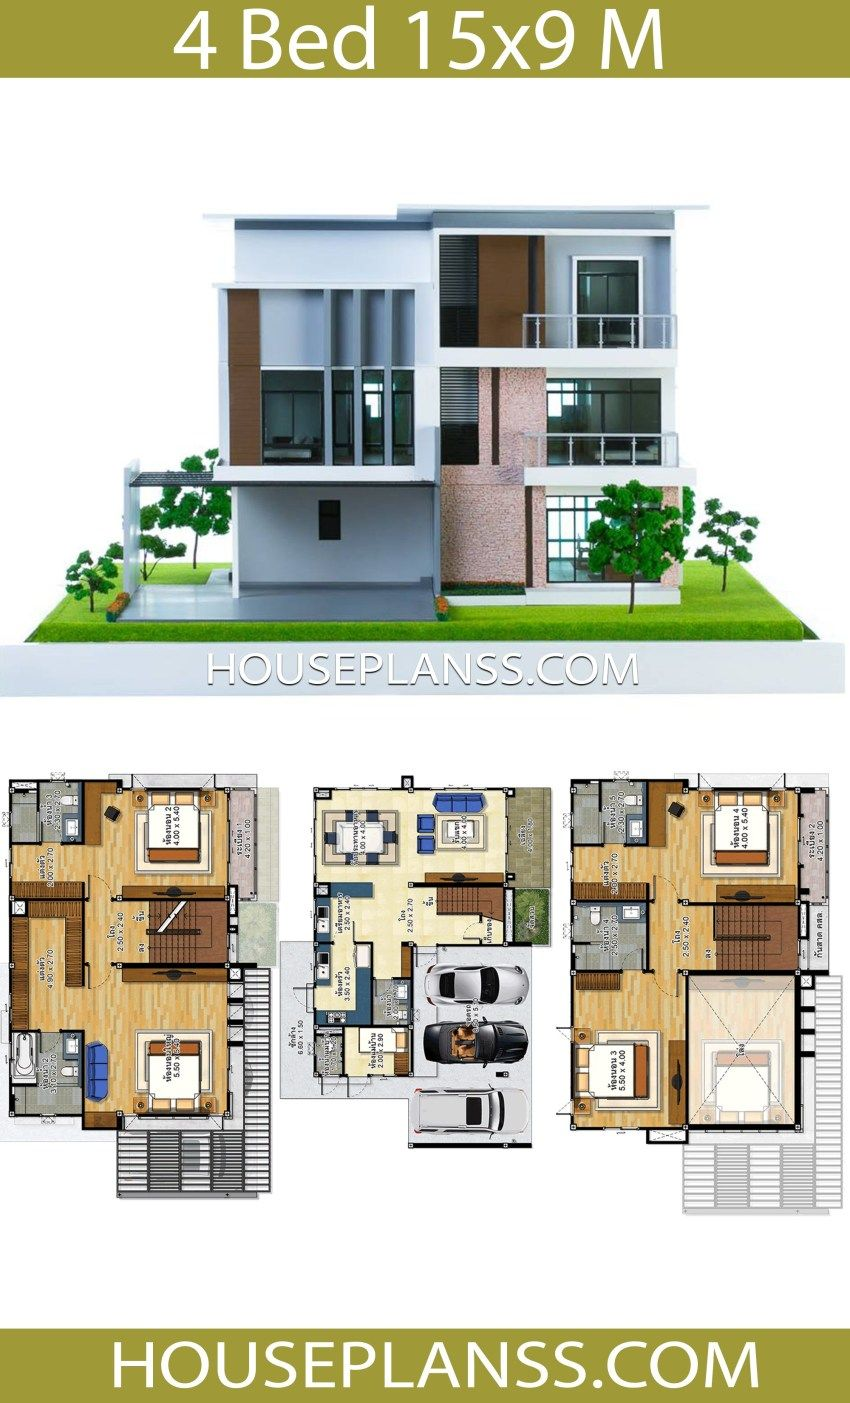 House Plans Idea 15x9 With 4 Bedrooms House Plans S House Construction Plan House Design My House Plans